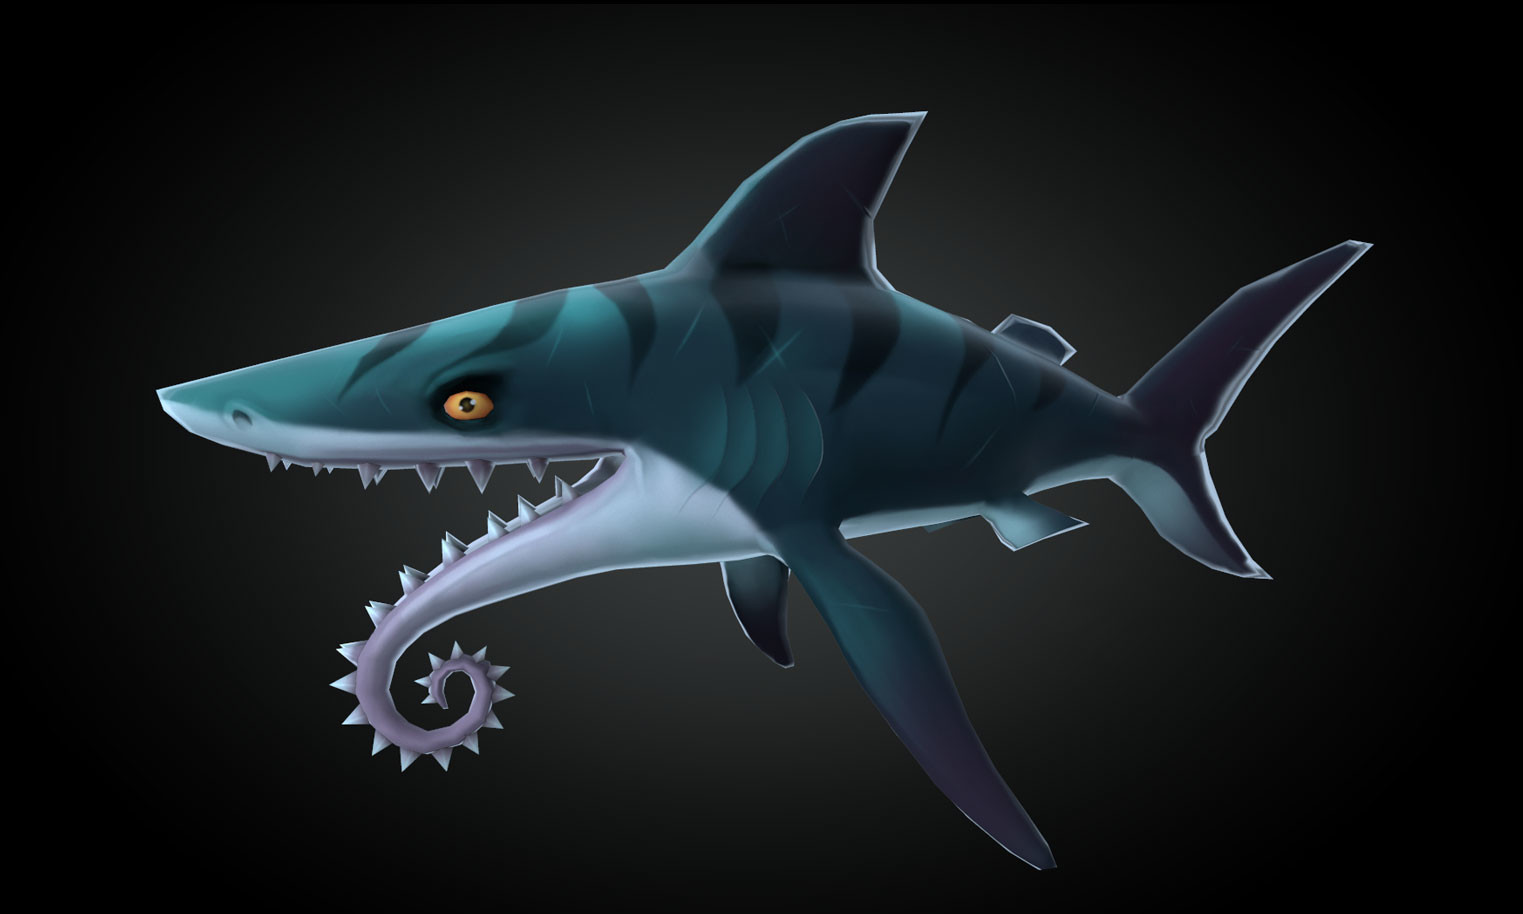 3D Shark - Helicoprion